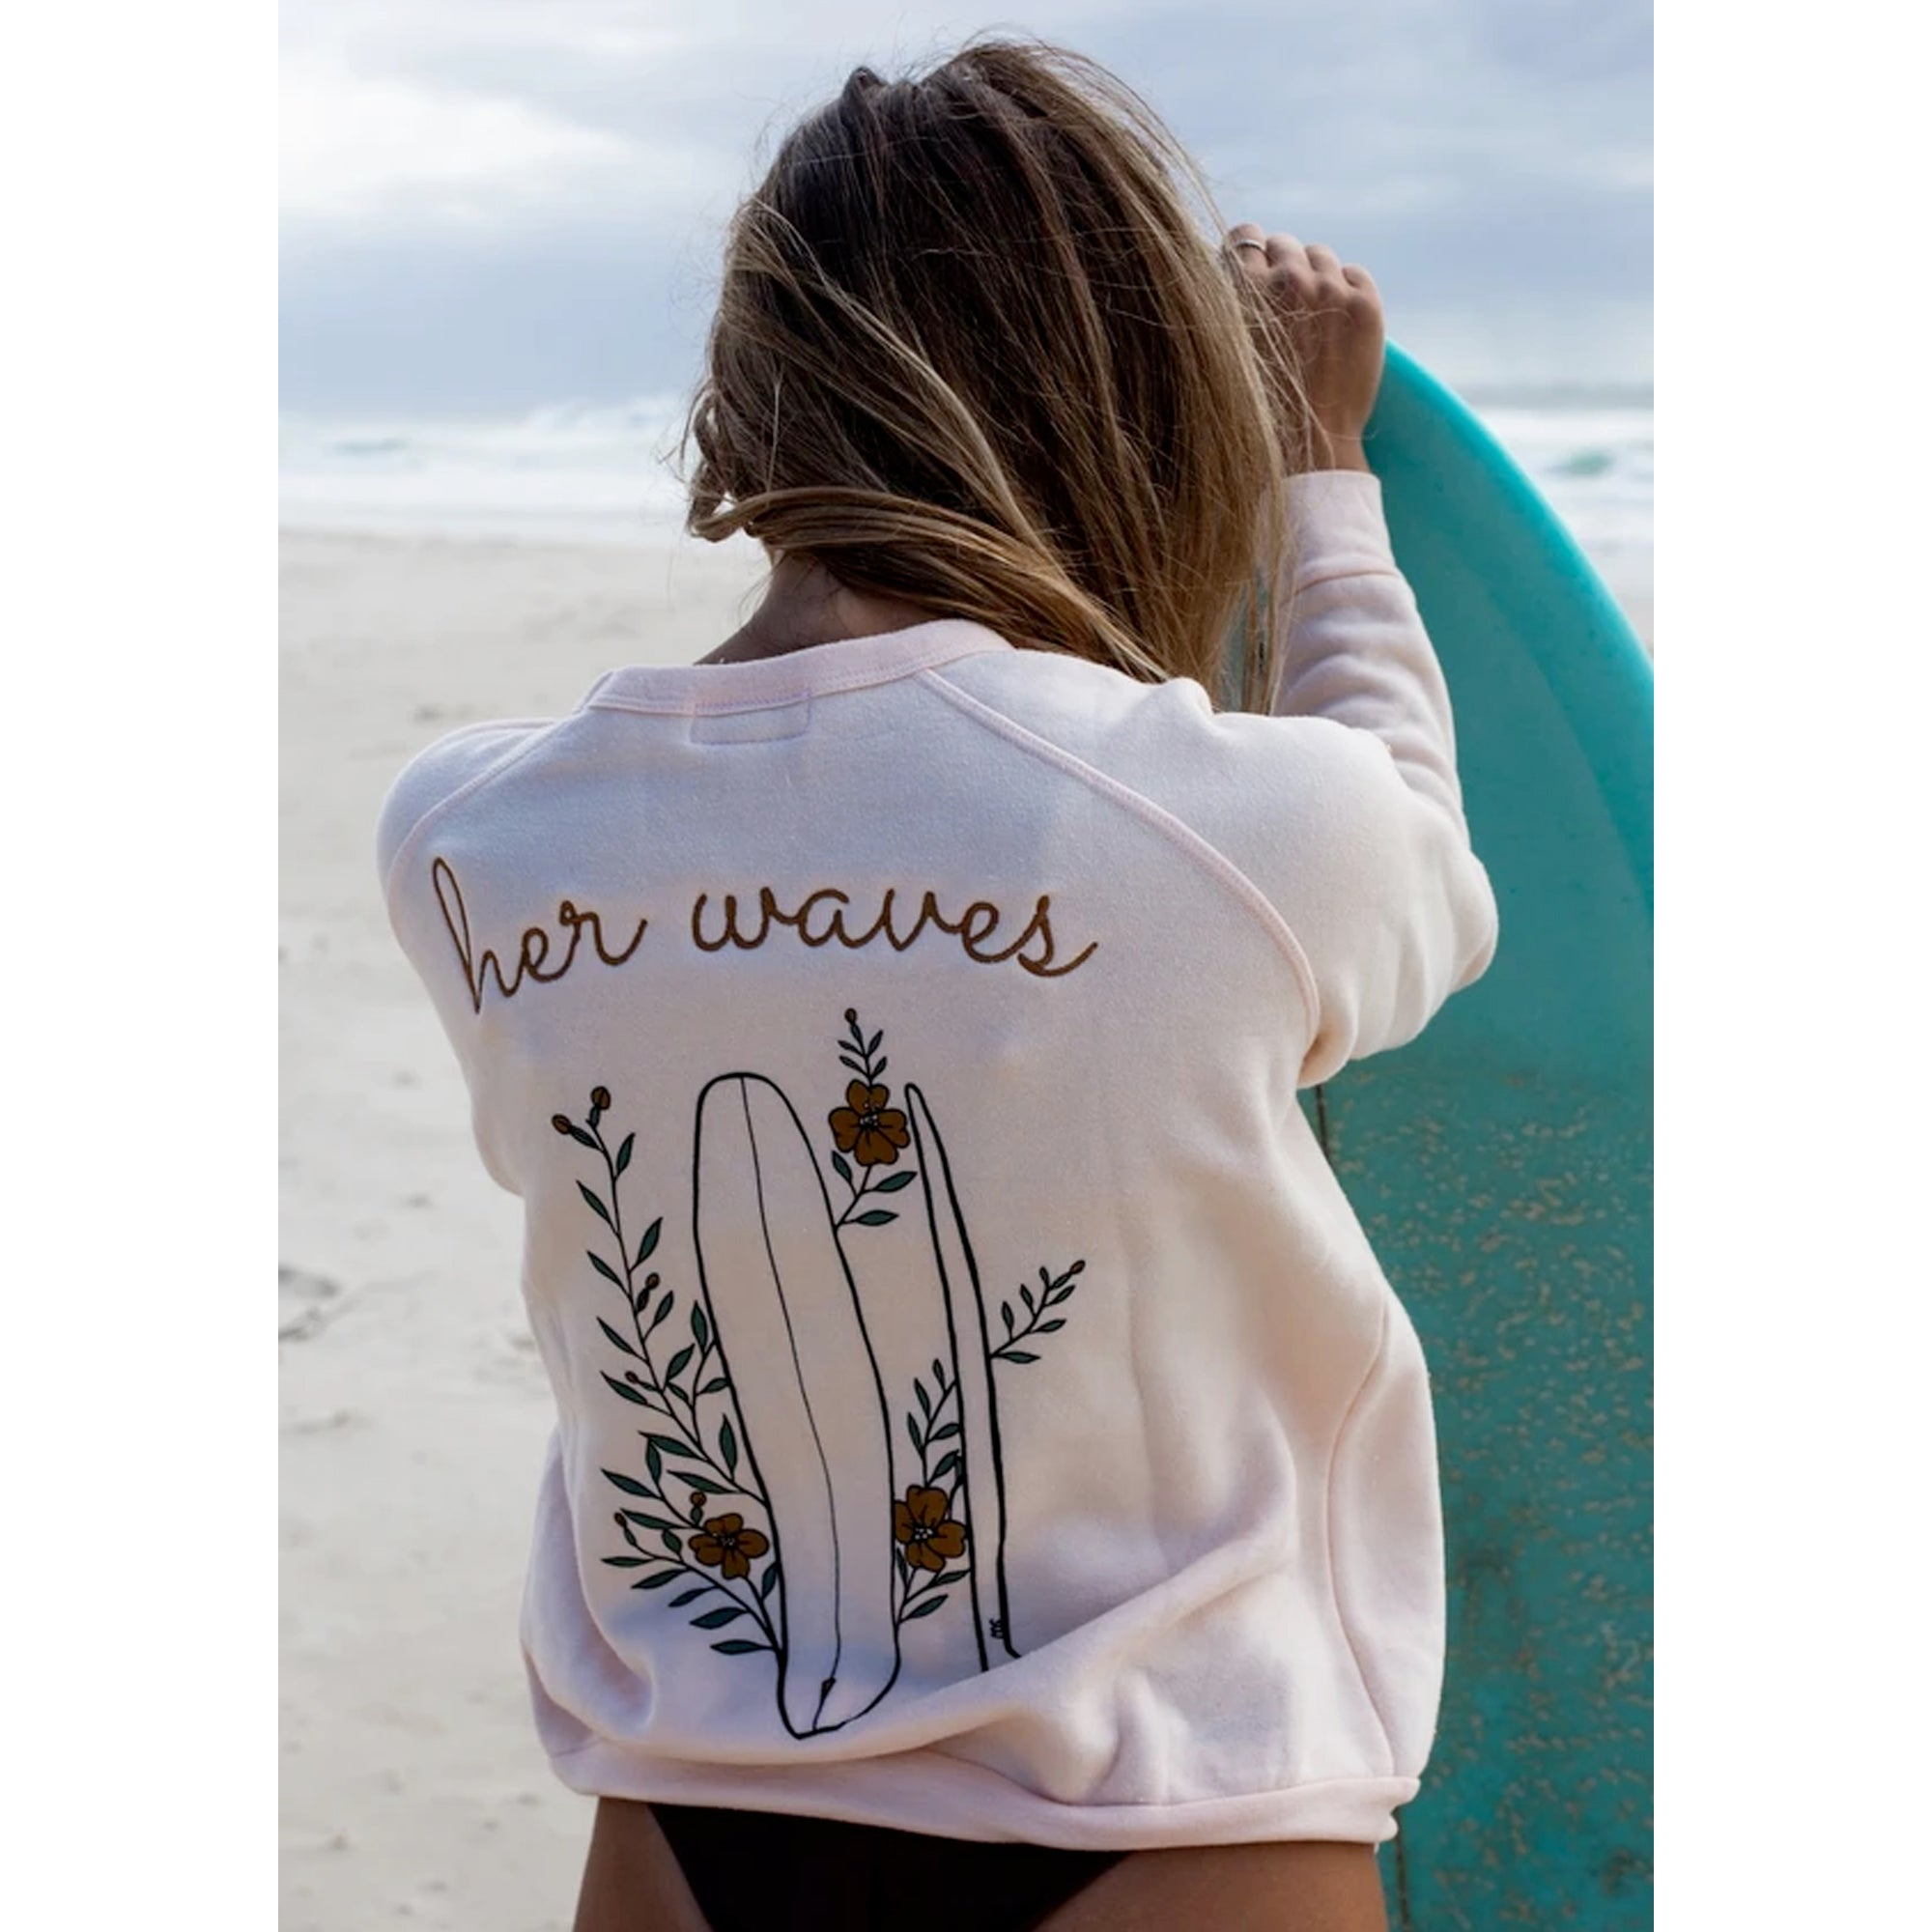 Her Waves Flowers & Fins Women's Sweatshirt